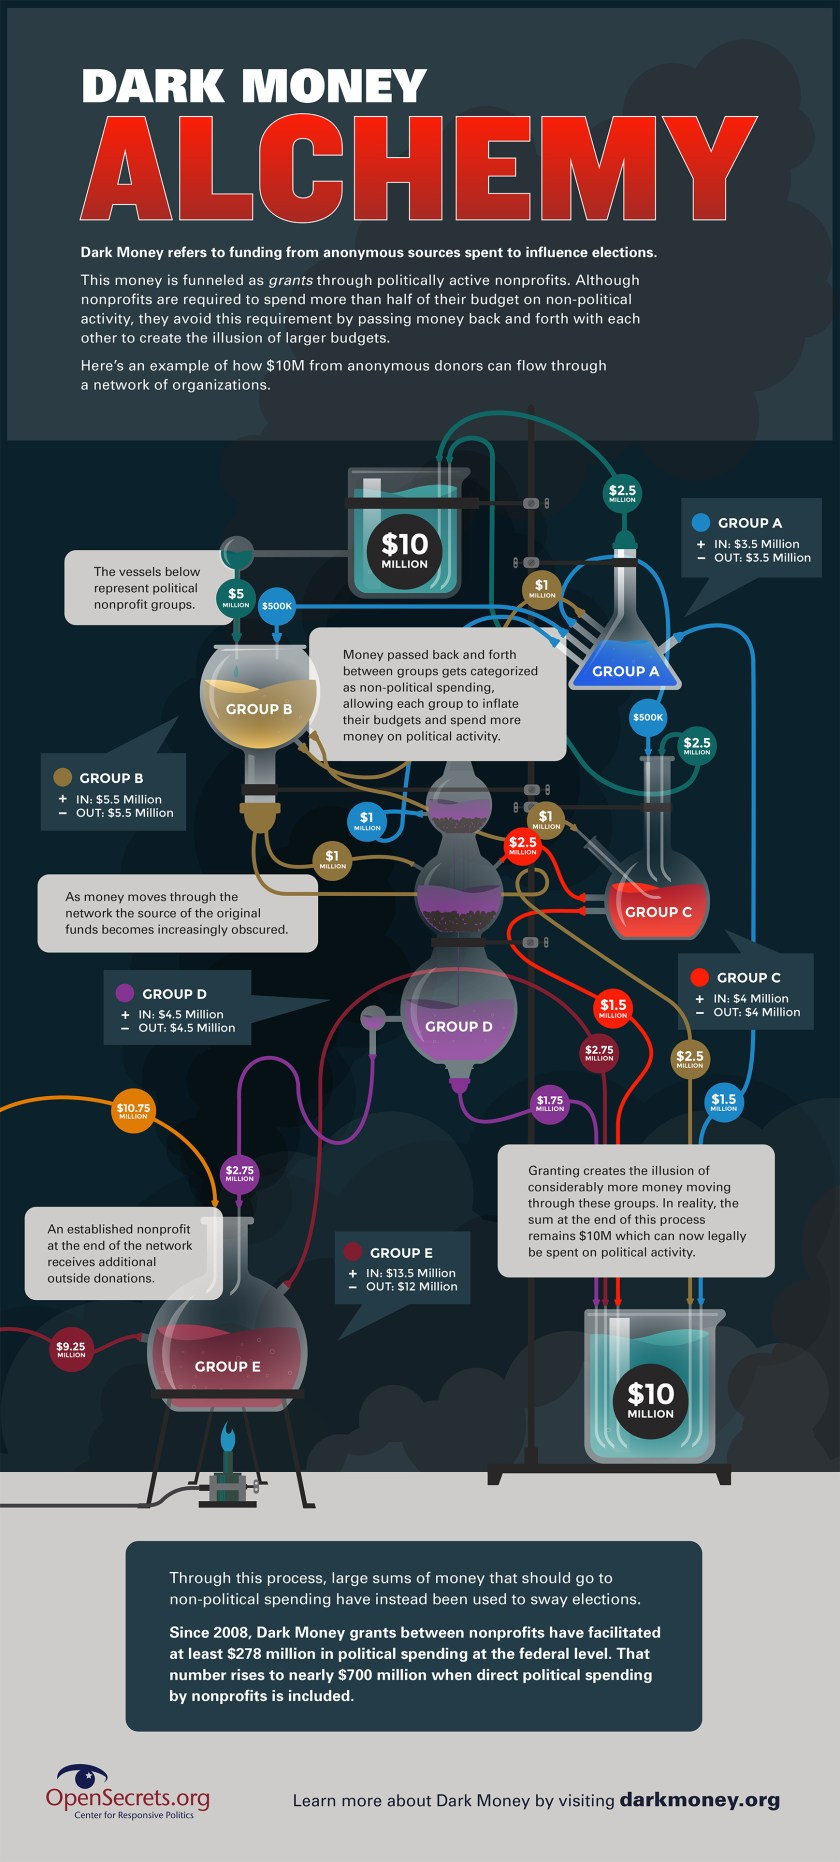 dark-money-alchemy-infographic.jpg